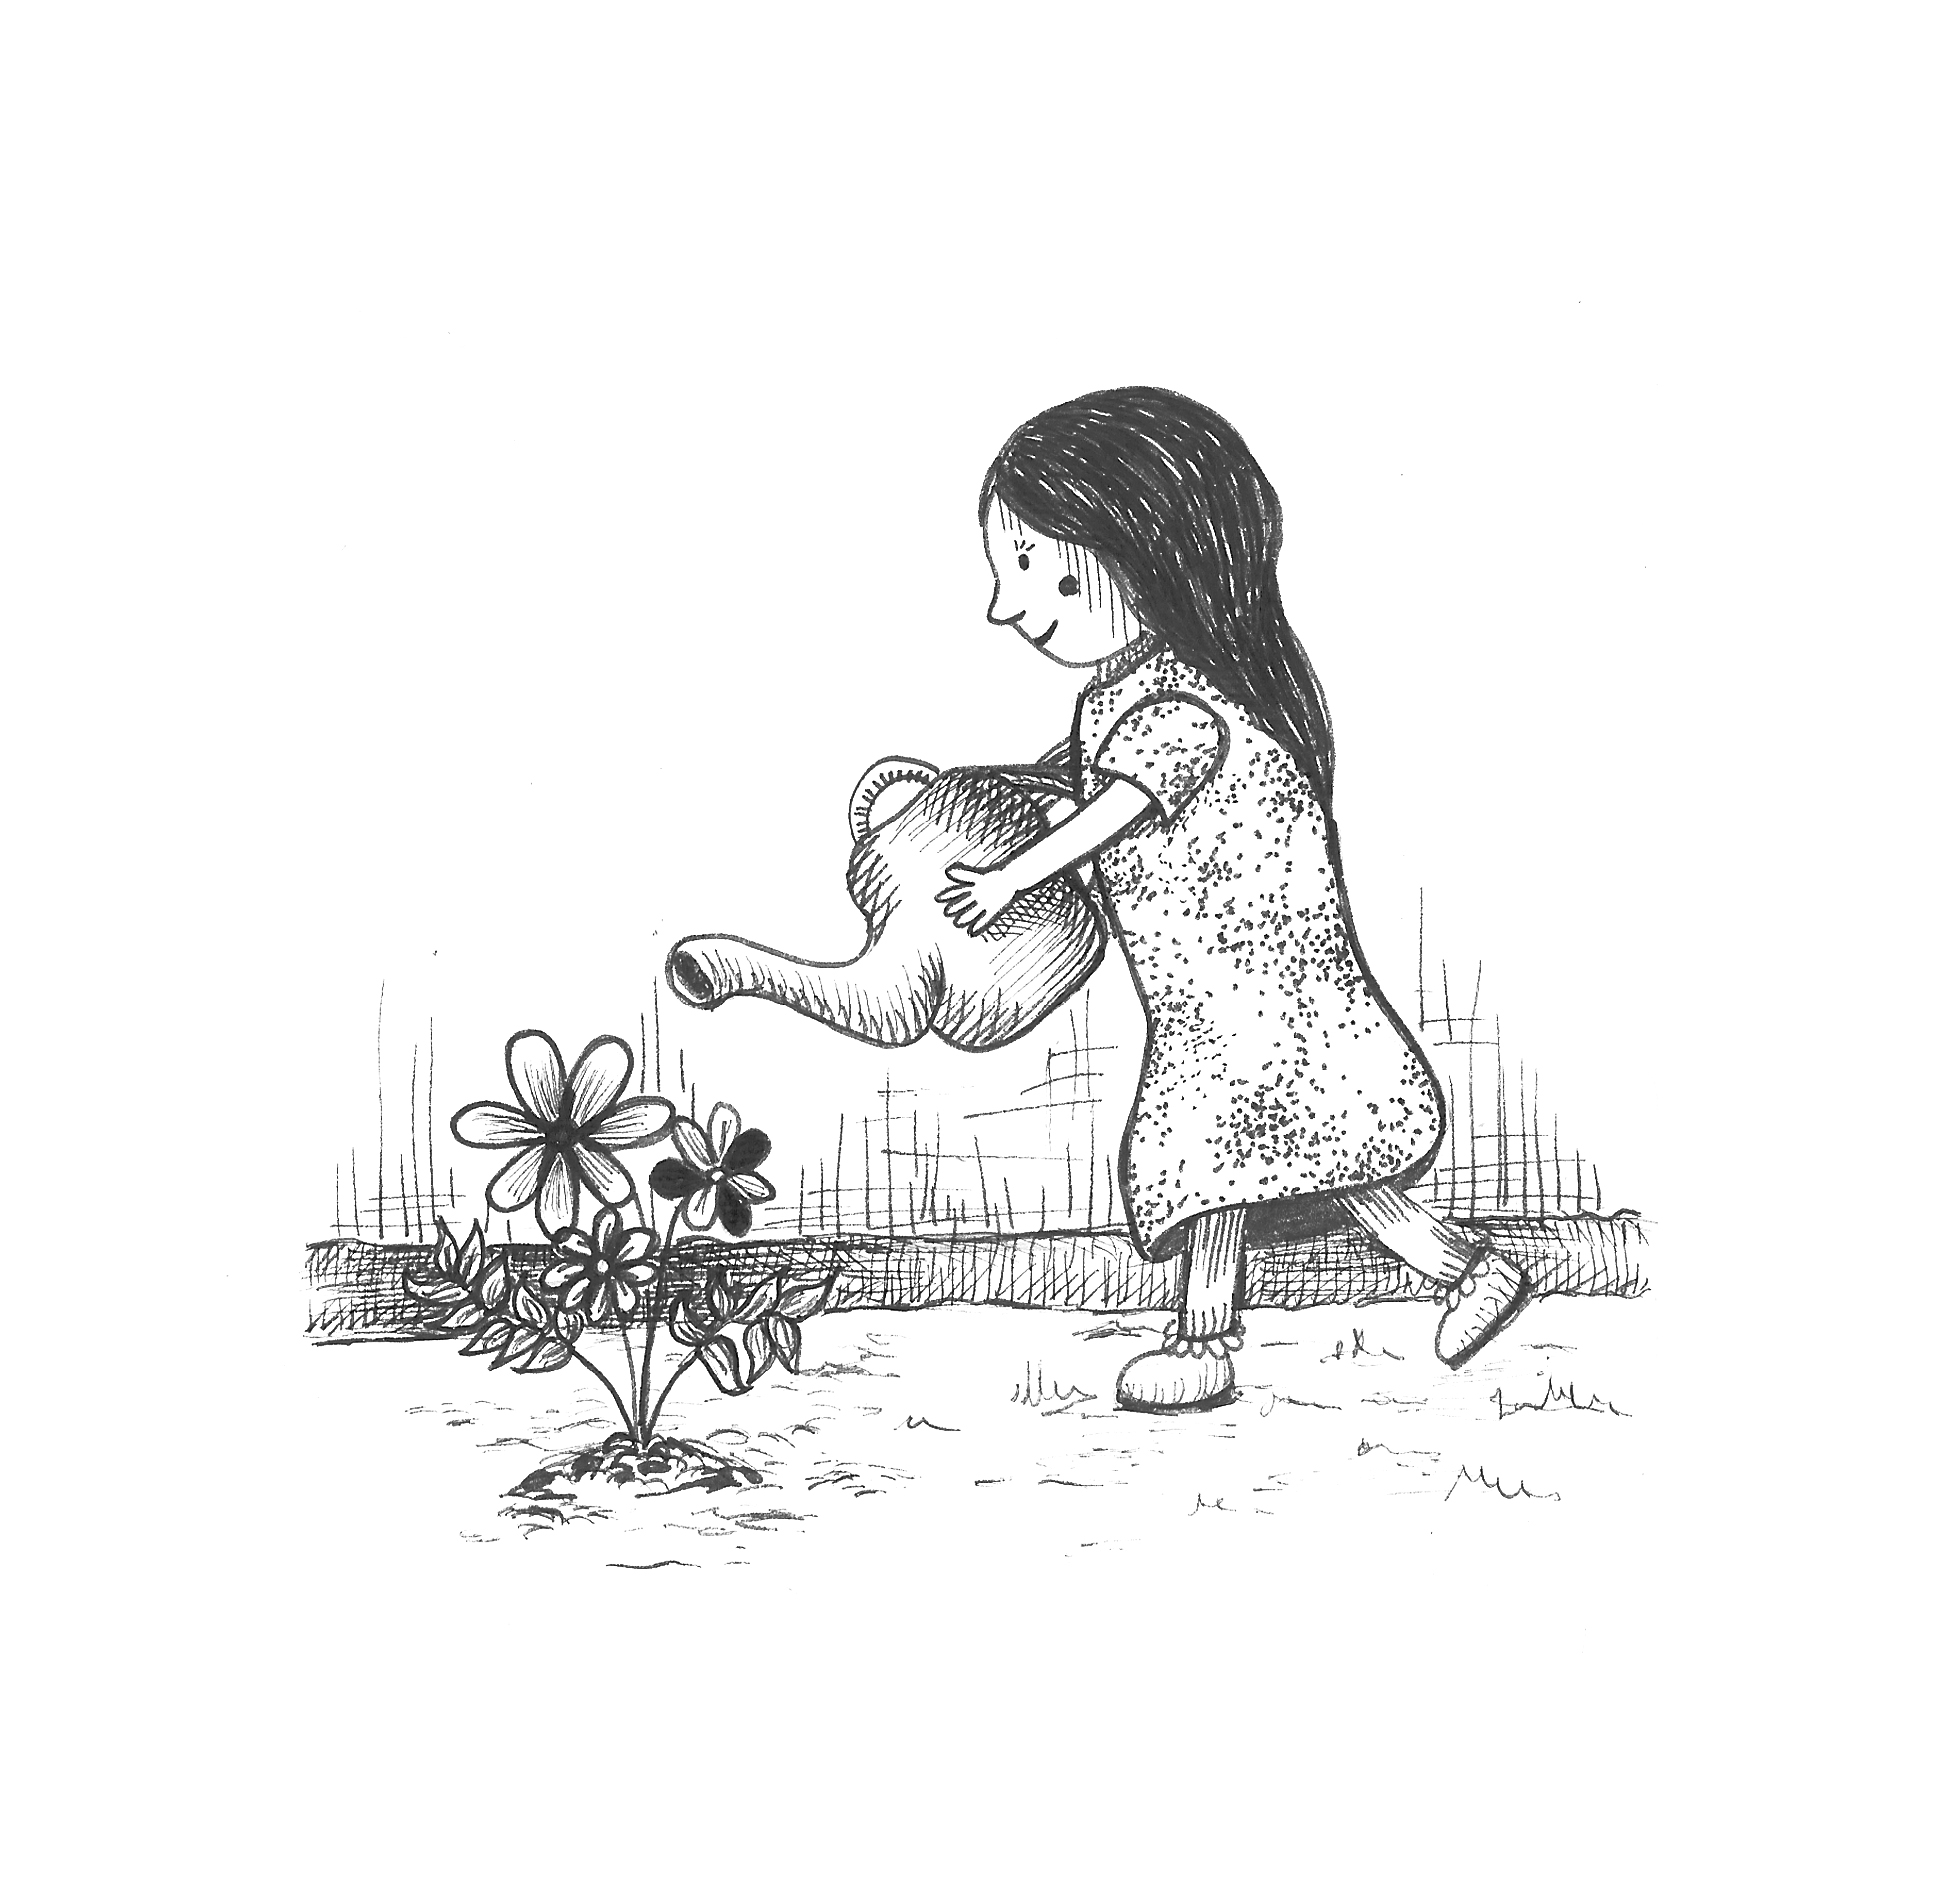 The little girl watering flowers